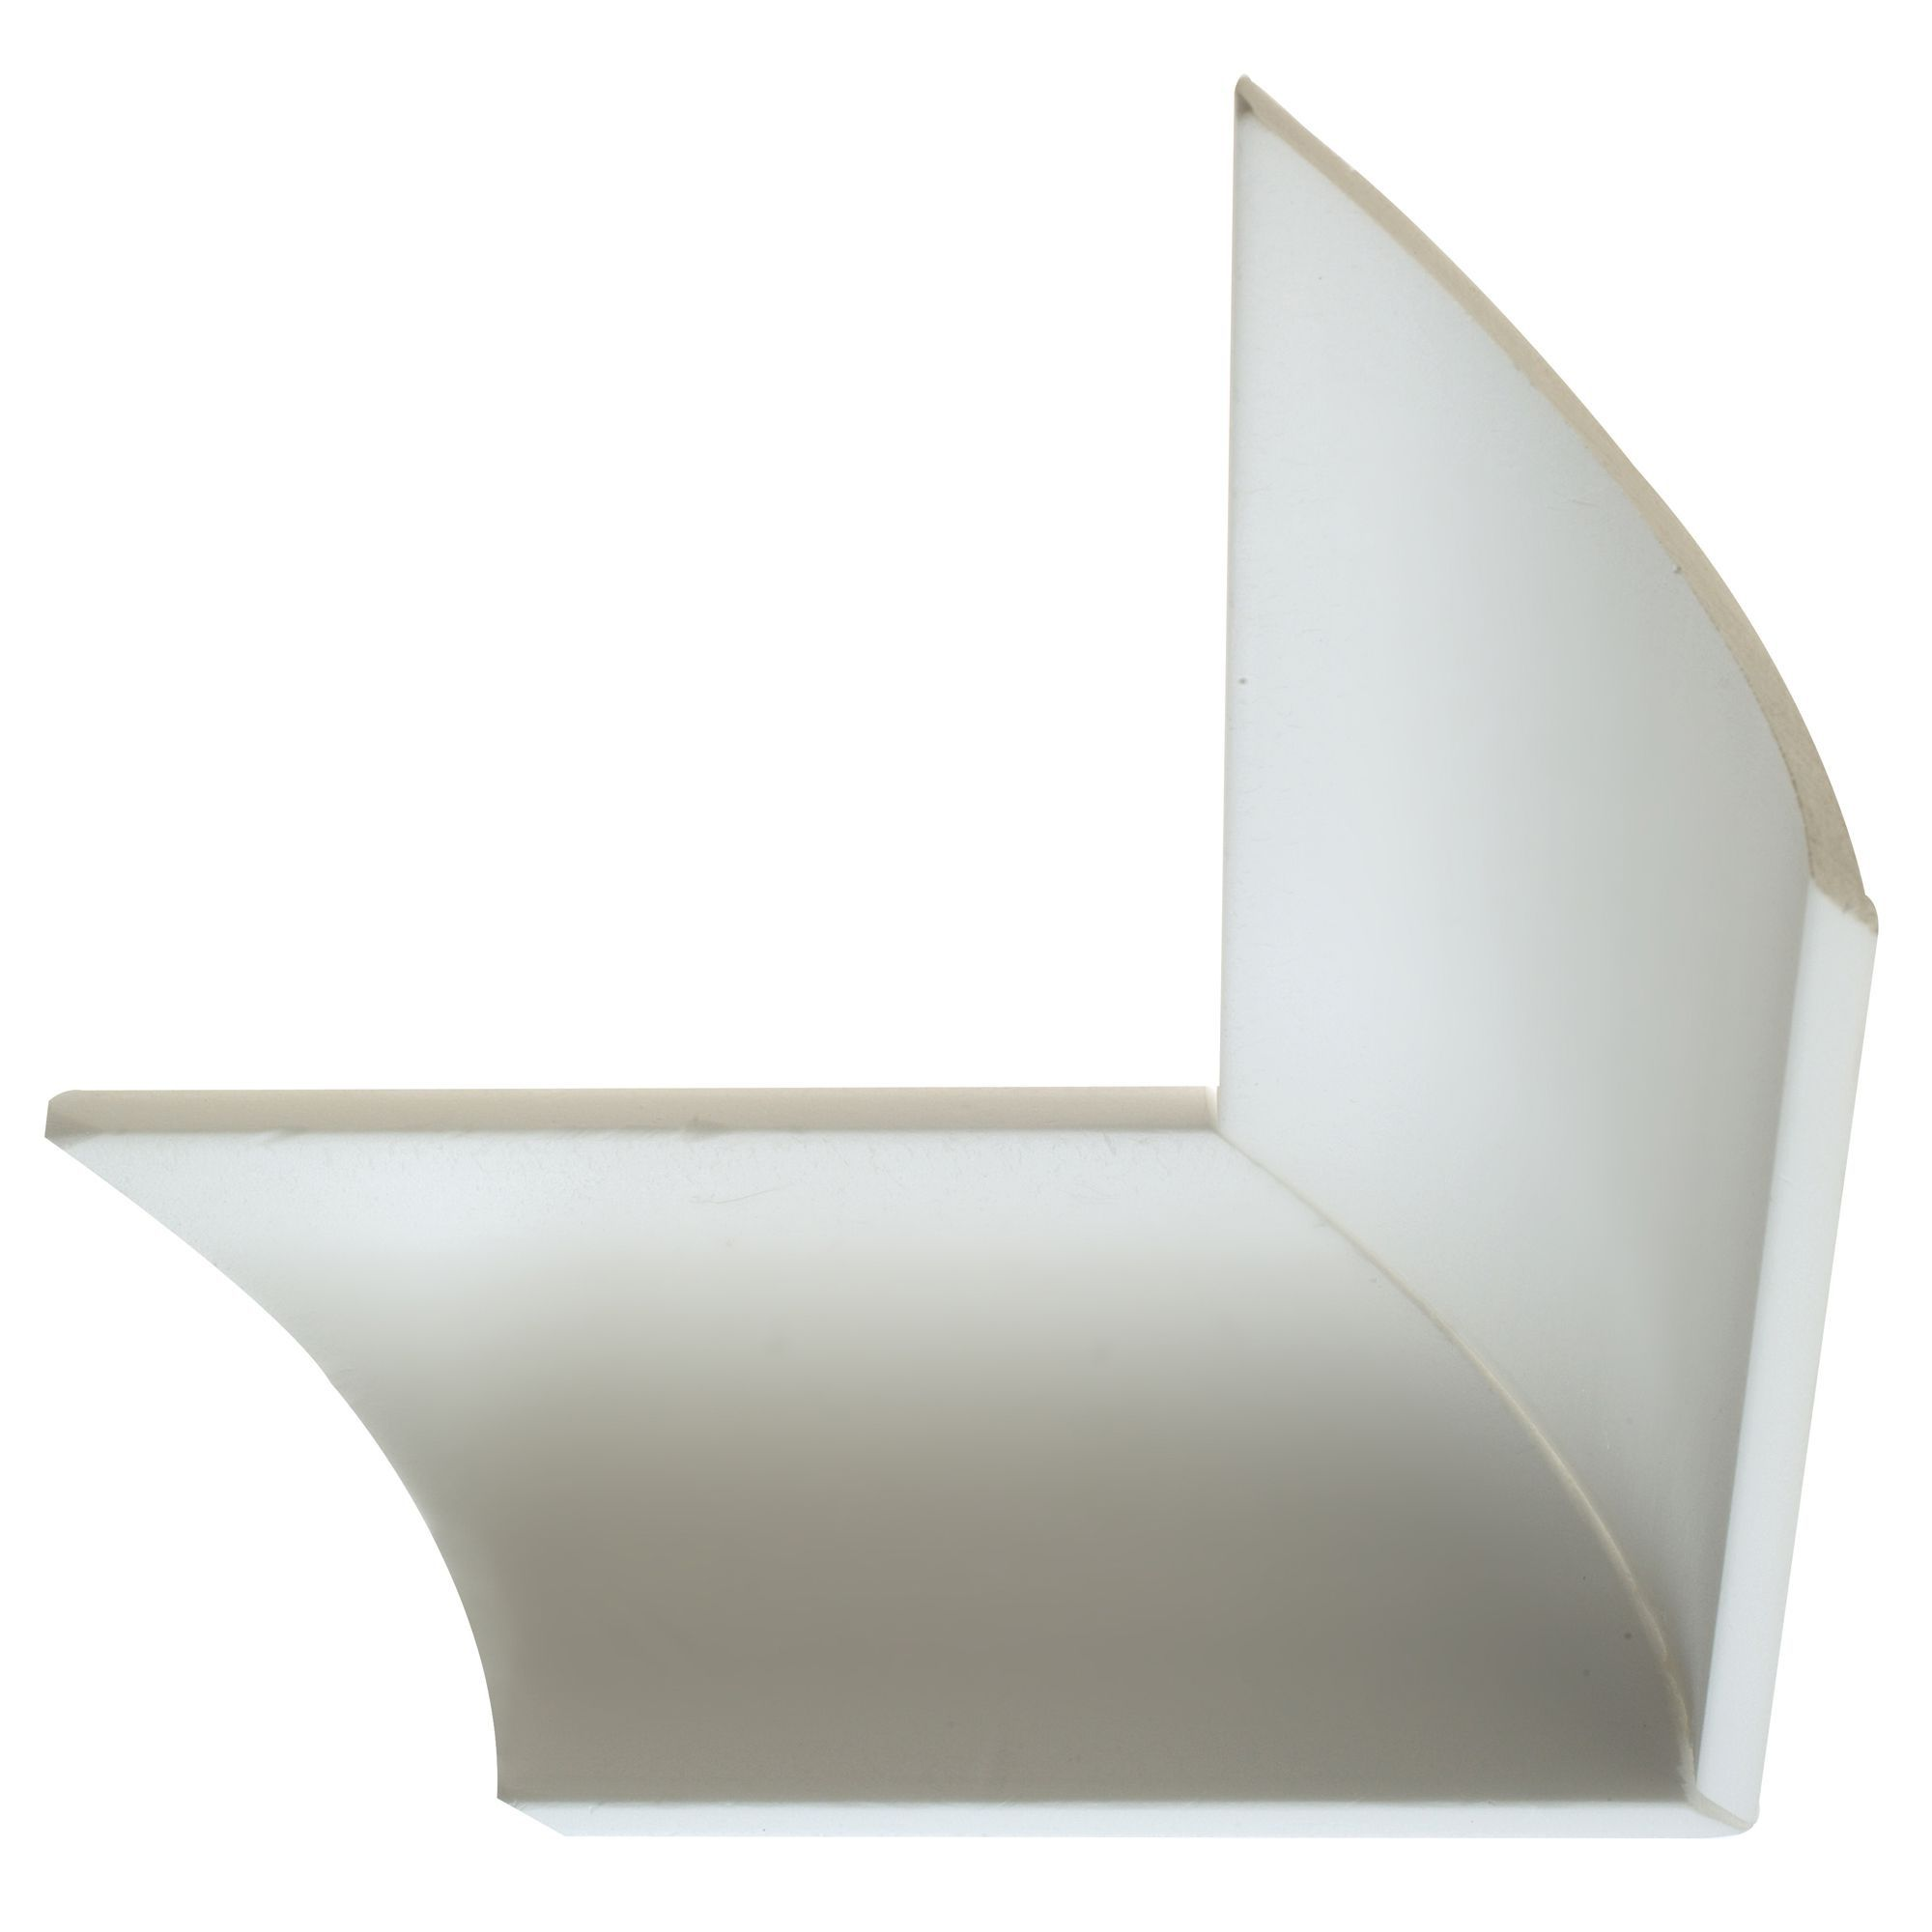 Value c profile coving l 180mm w 100mm t 20mm pack of for Coving corner template